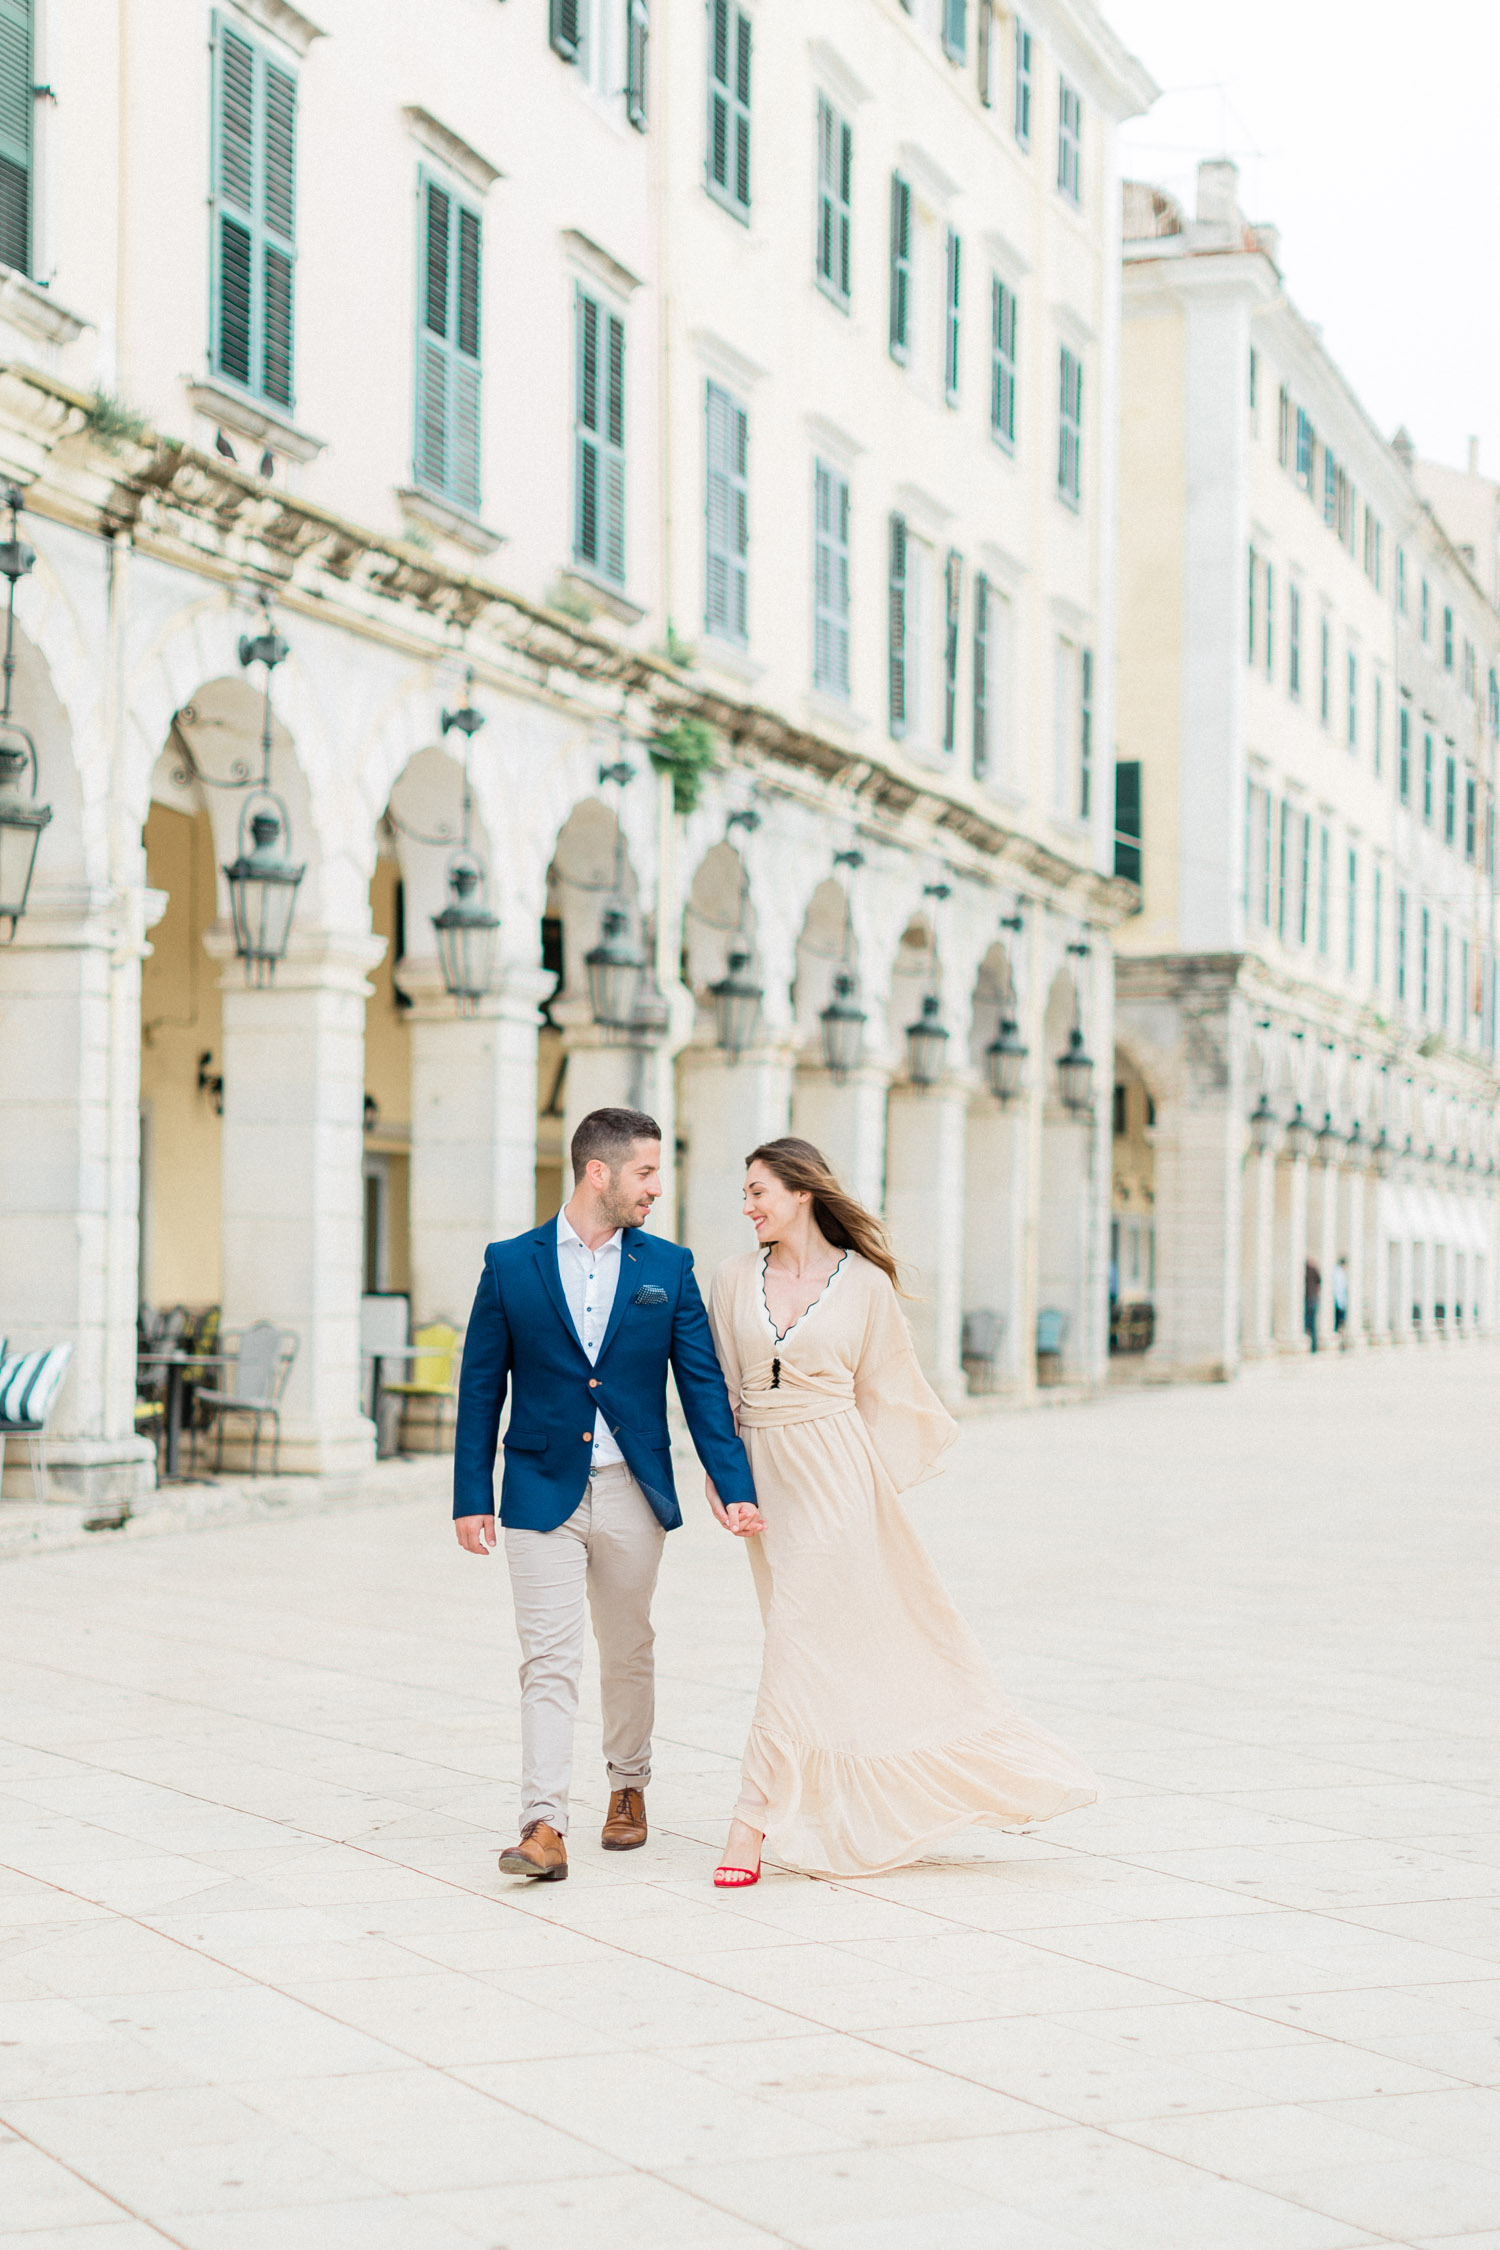 lovely engagement session, while walk in Liston square, Corfu